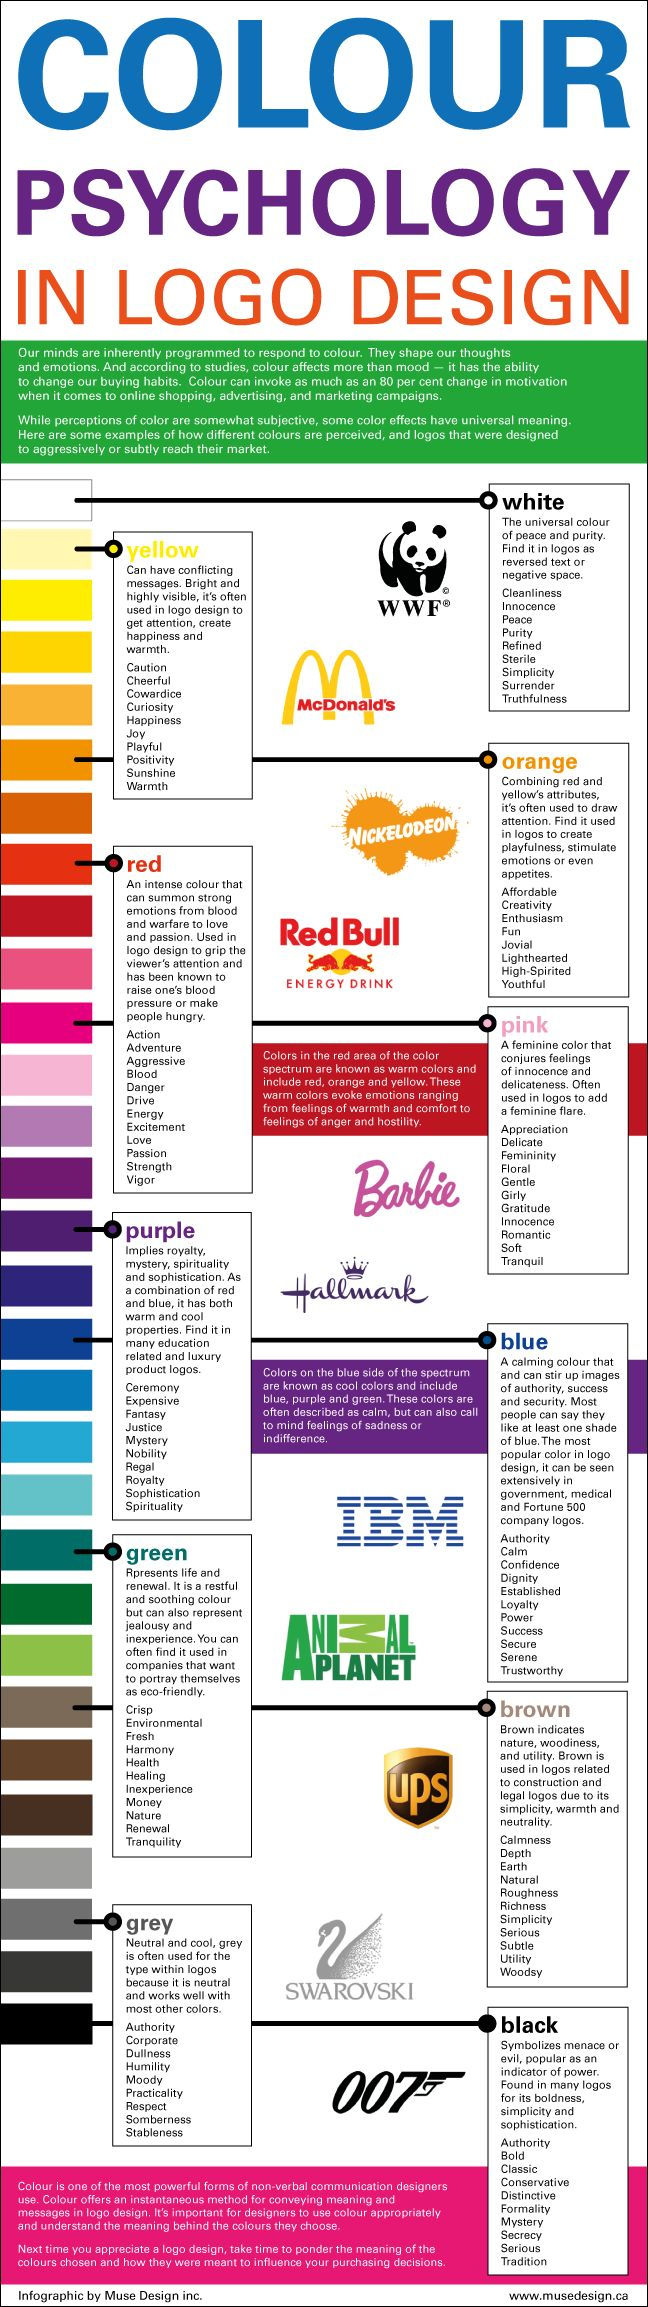 Color psychology in logo design.